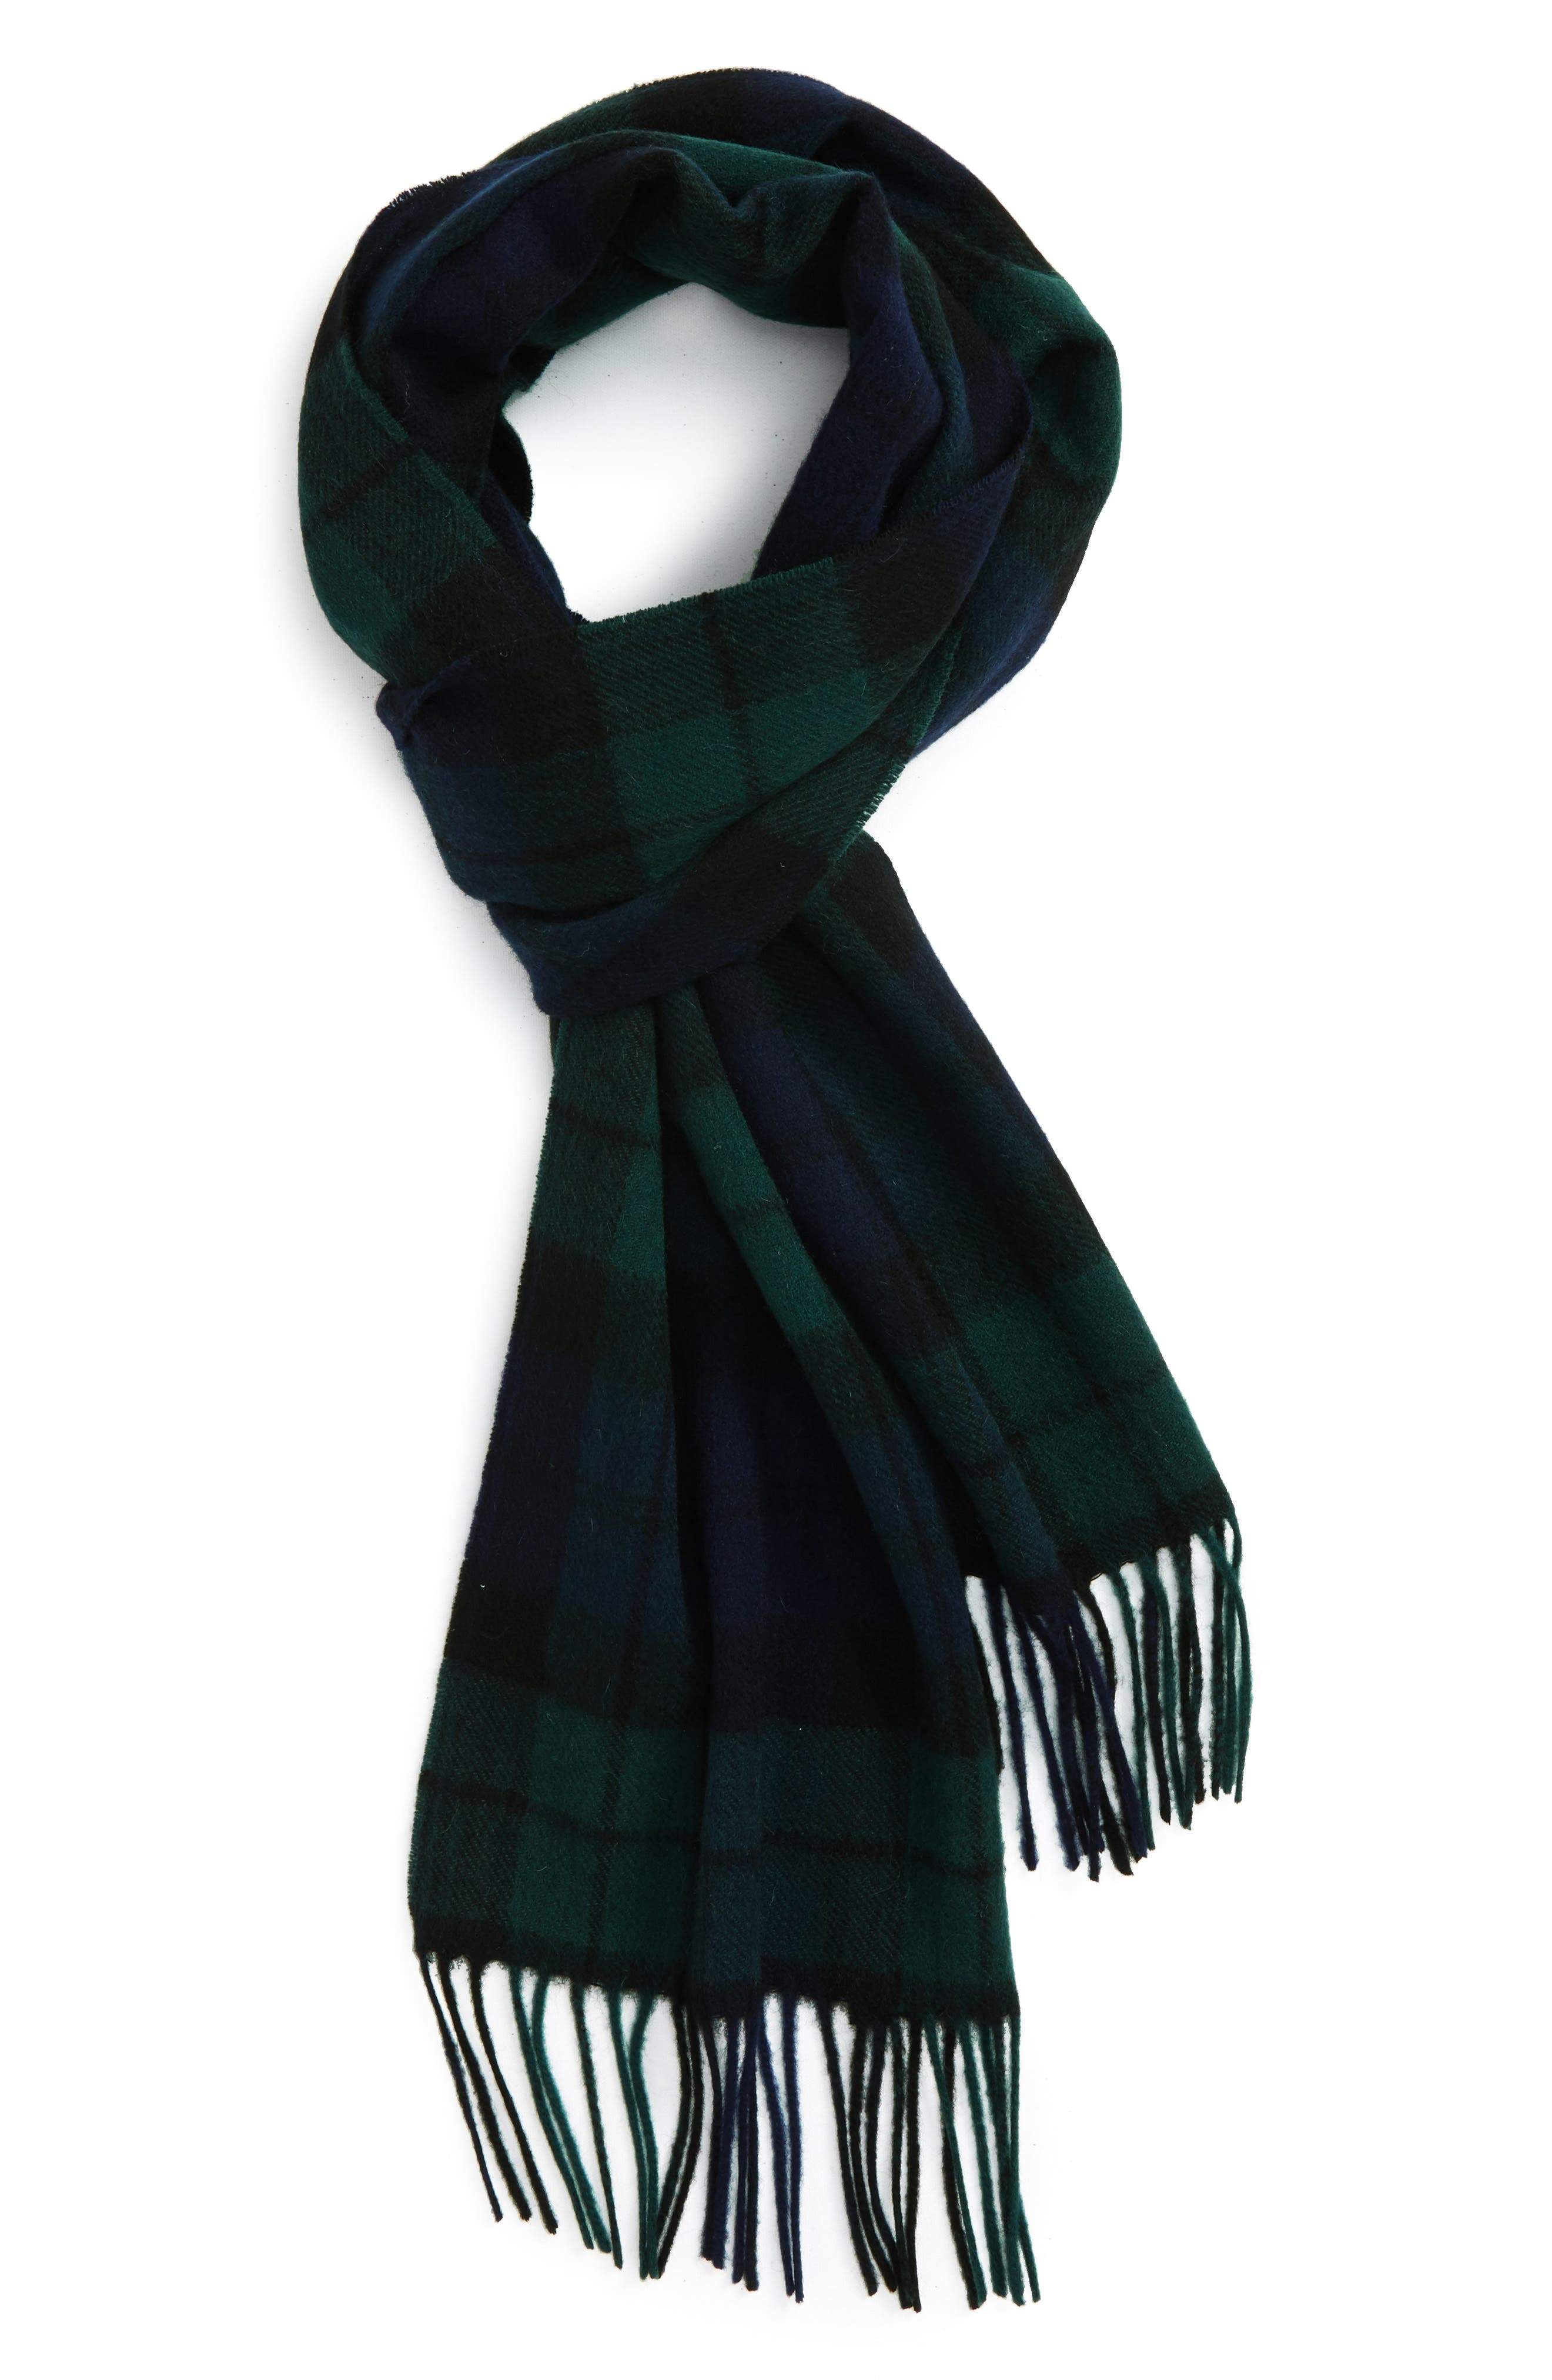 New Check Lambswool & Cashmere Scarf,                             Alternate thumbnail 2, color,                             BLACK WATCH